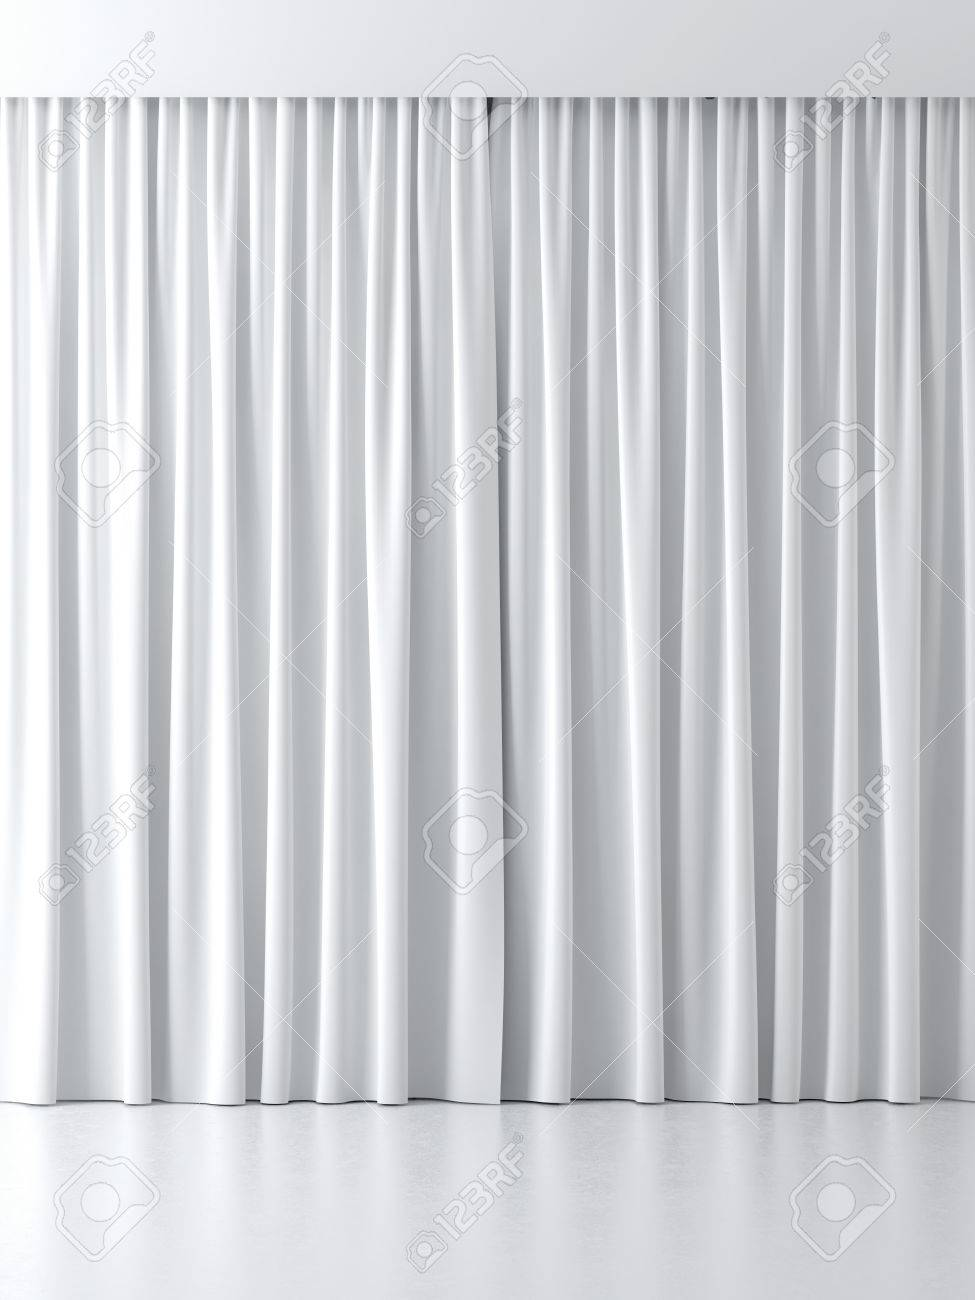 White Curtains Isolated On A White Background Stock Photo, Picture